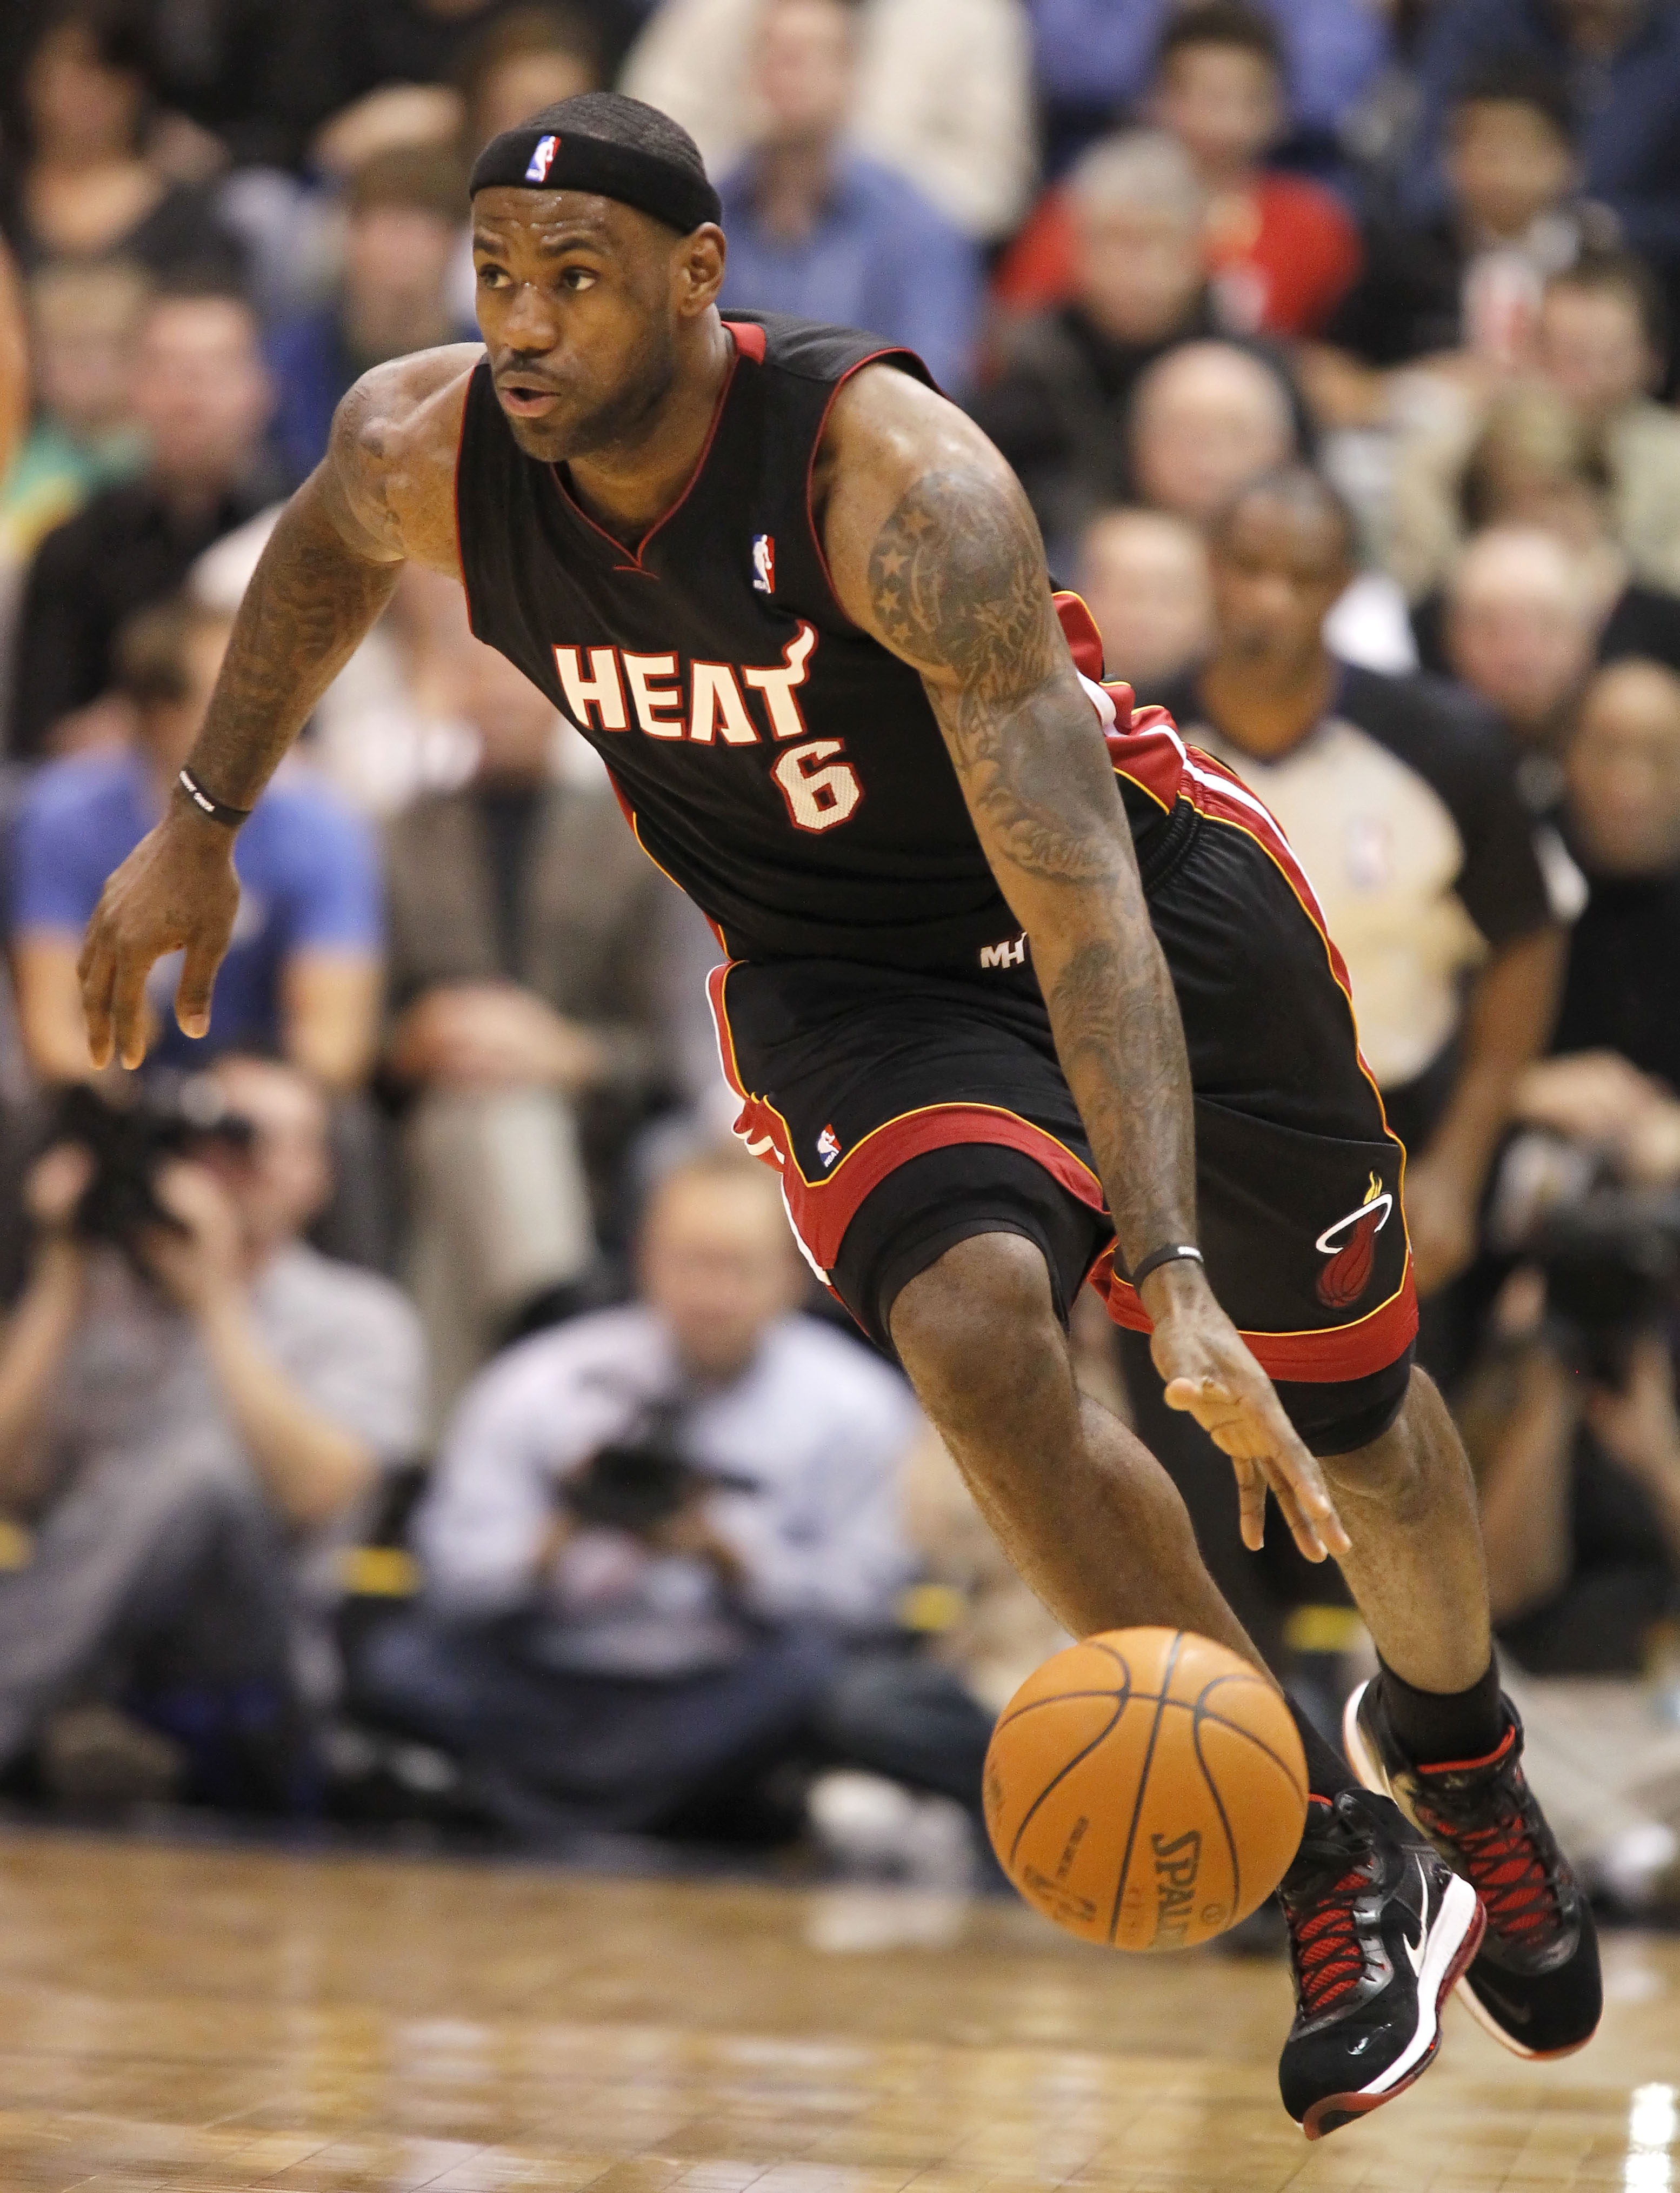 SALT LAKE CITY, UT - DECEMBER 8: LeBron James #6 of the Miami Heat  brings the ball down court during a game against the Utah Jazz during the first half of an NBA game December 8, 2010 at Energy Solutions Arena in Salt Lake City, Utah. NOTE TO USER:  User